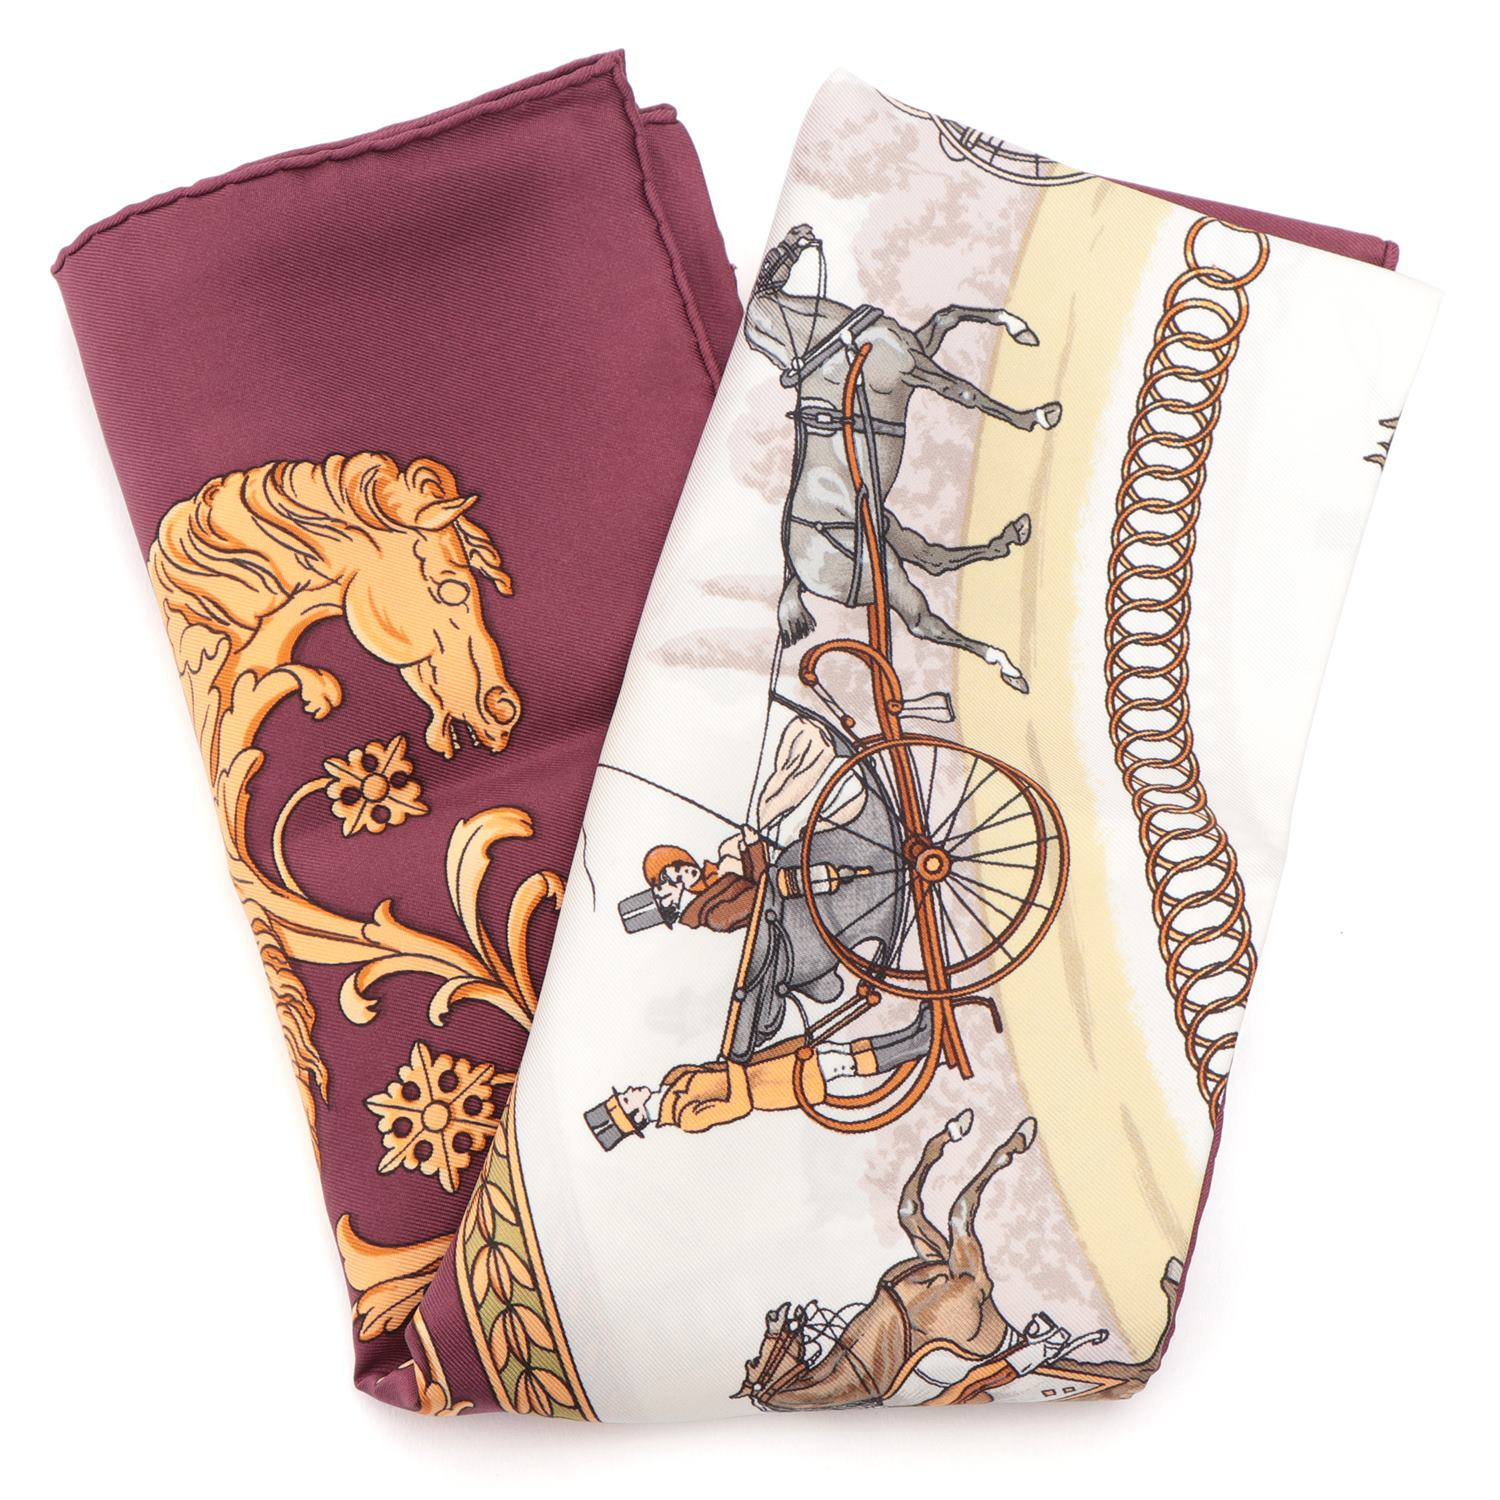 [Used goods] Hermes Carre 90 scarf 90 × 90 walk to the Silk Bordeaux LA PROMENADE DE LONGCHAMPS Longchamp